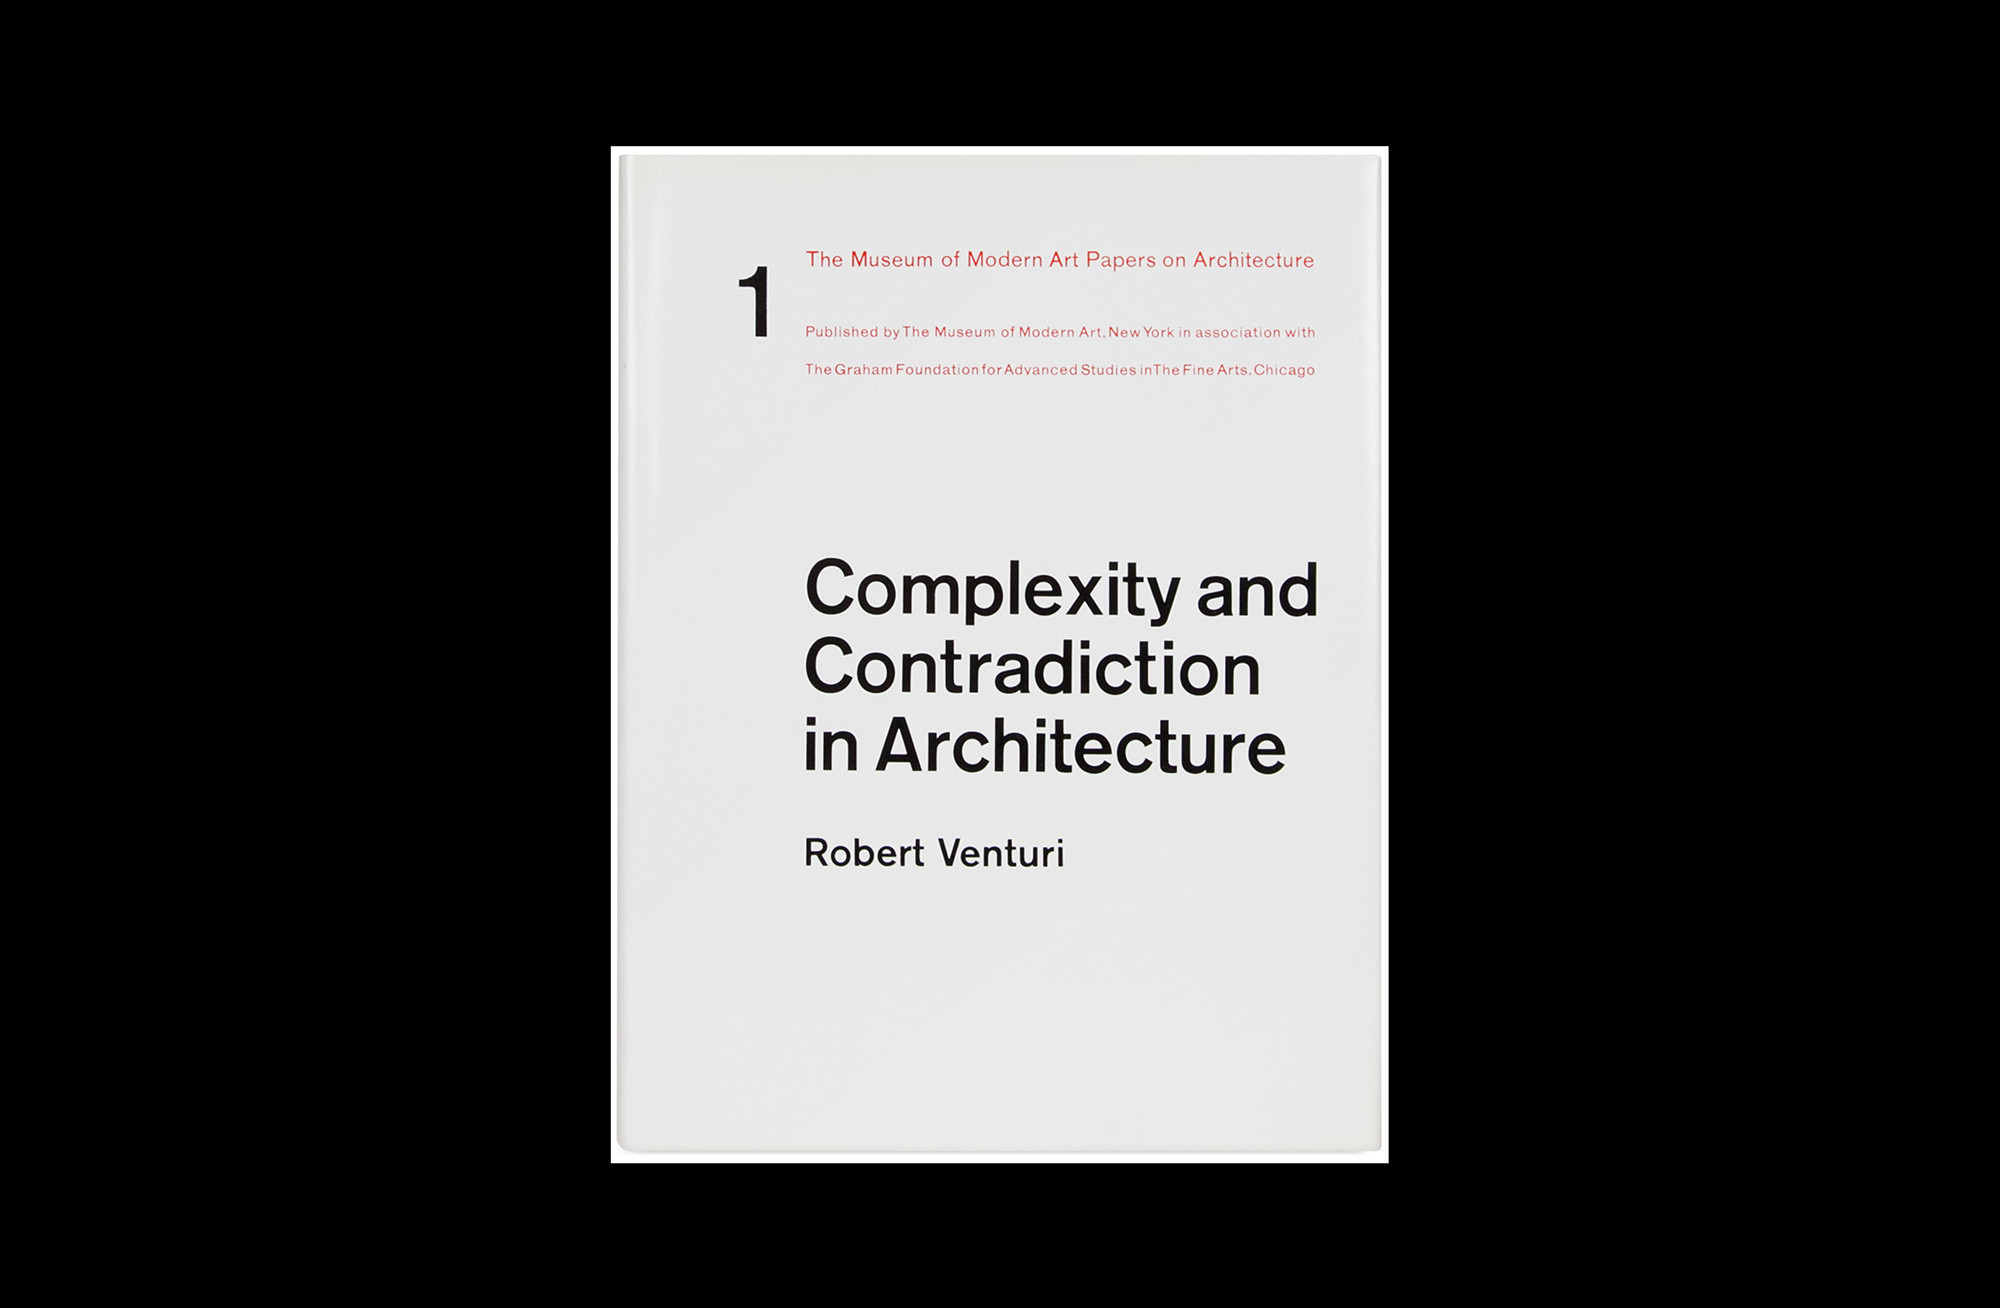 Complexity-and-Contradiction-cover_matted3.jpg